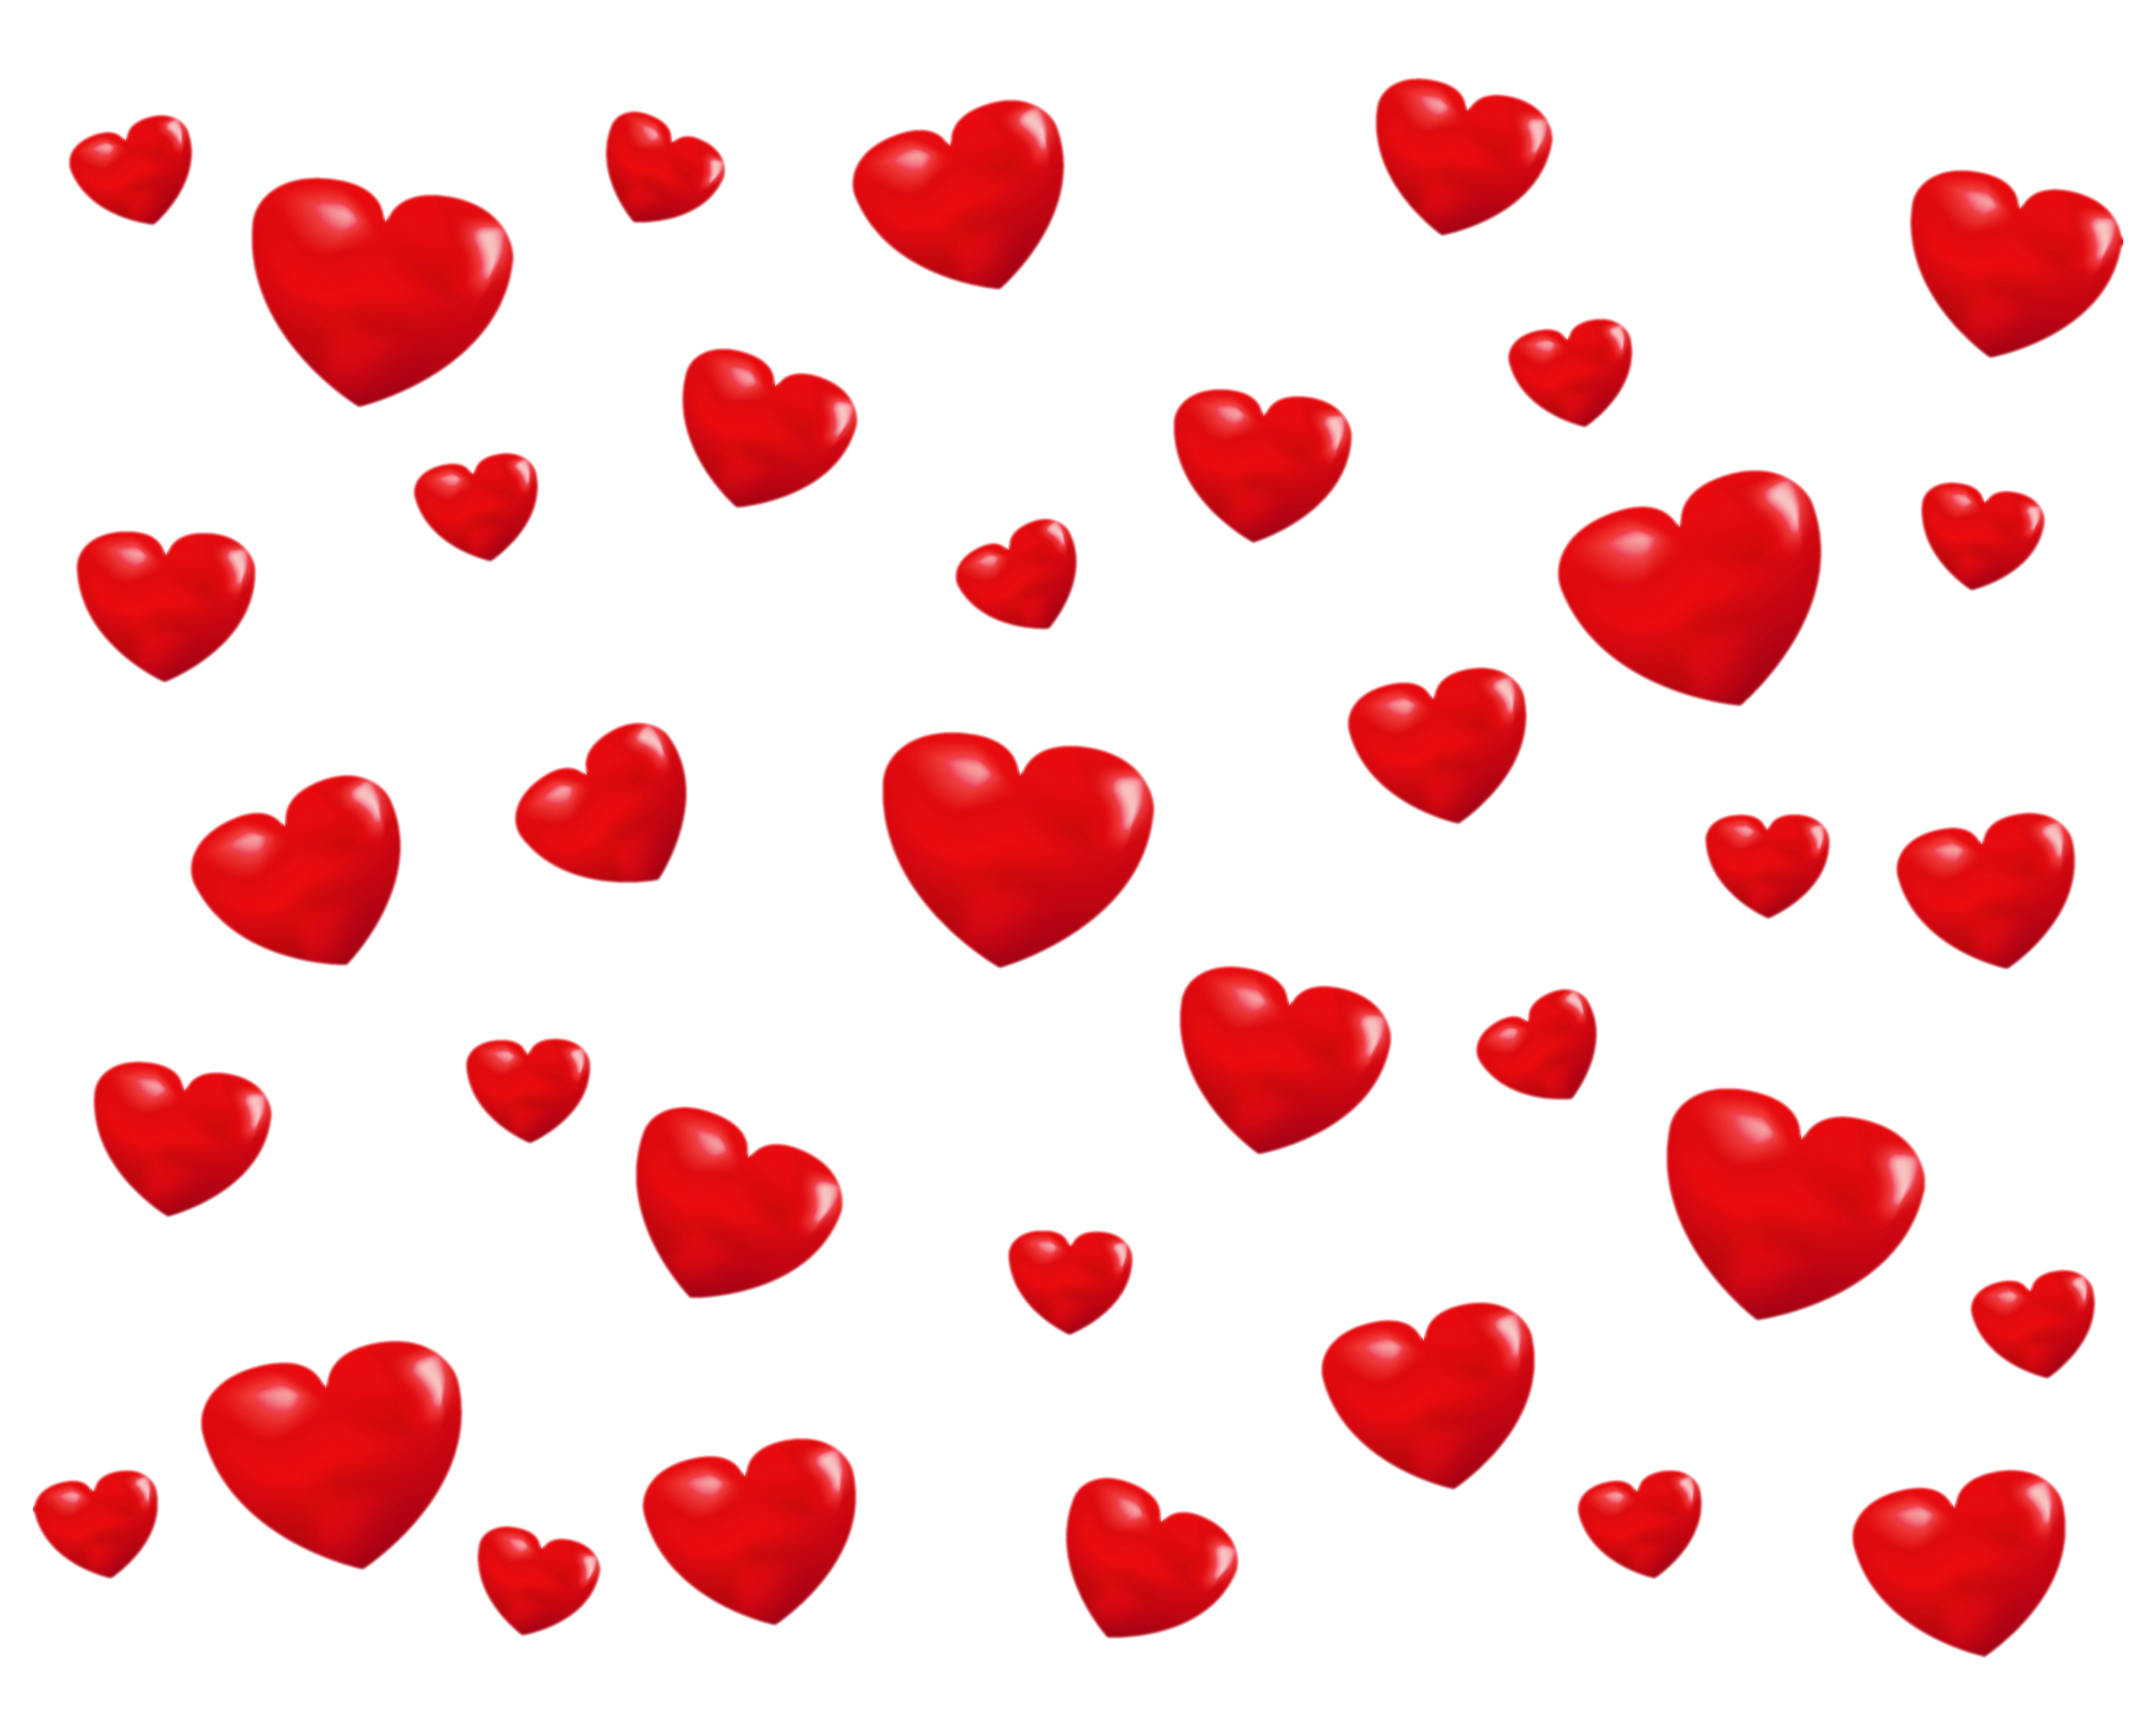 Transparent PNG Background with Hearts - Heart PNG HD Transparent Background